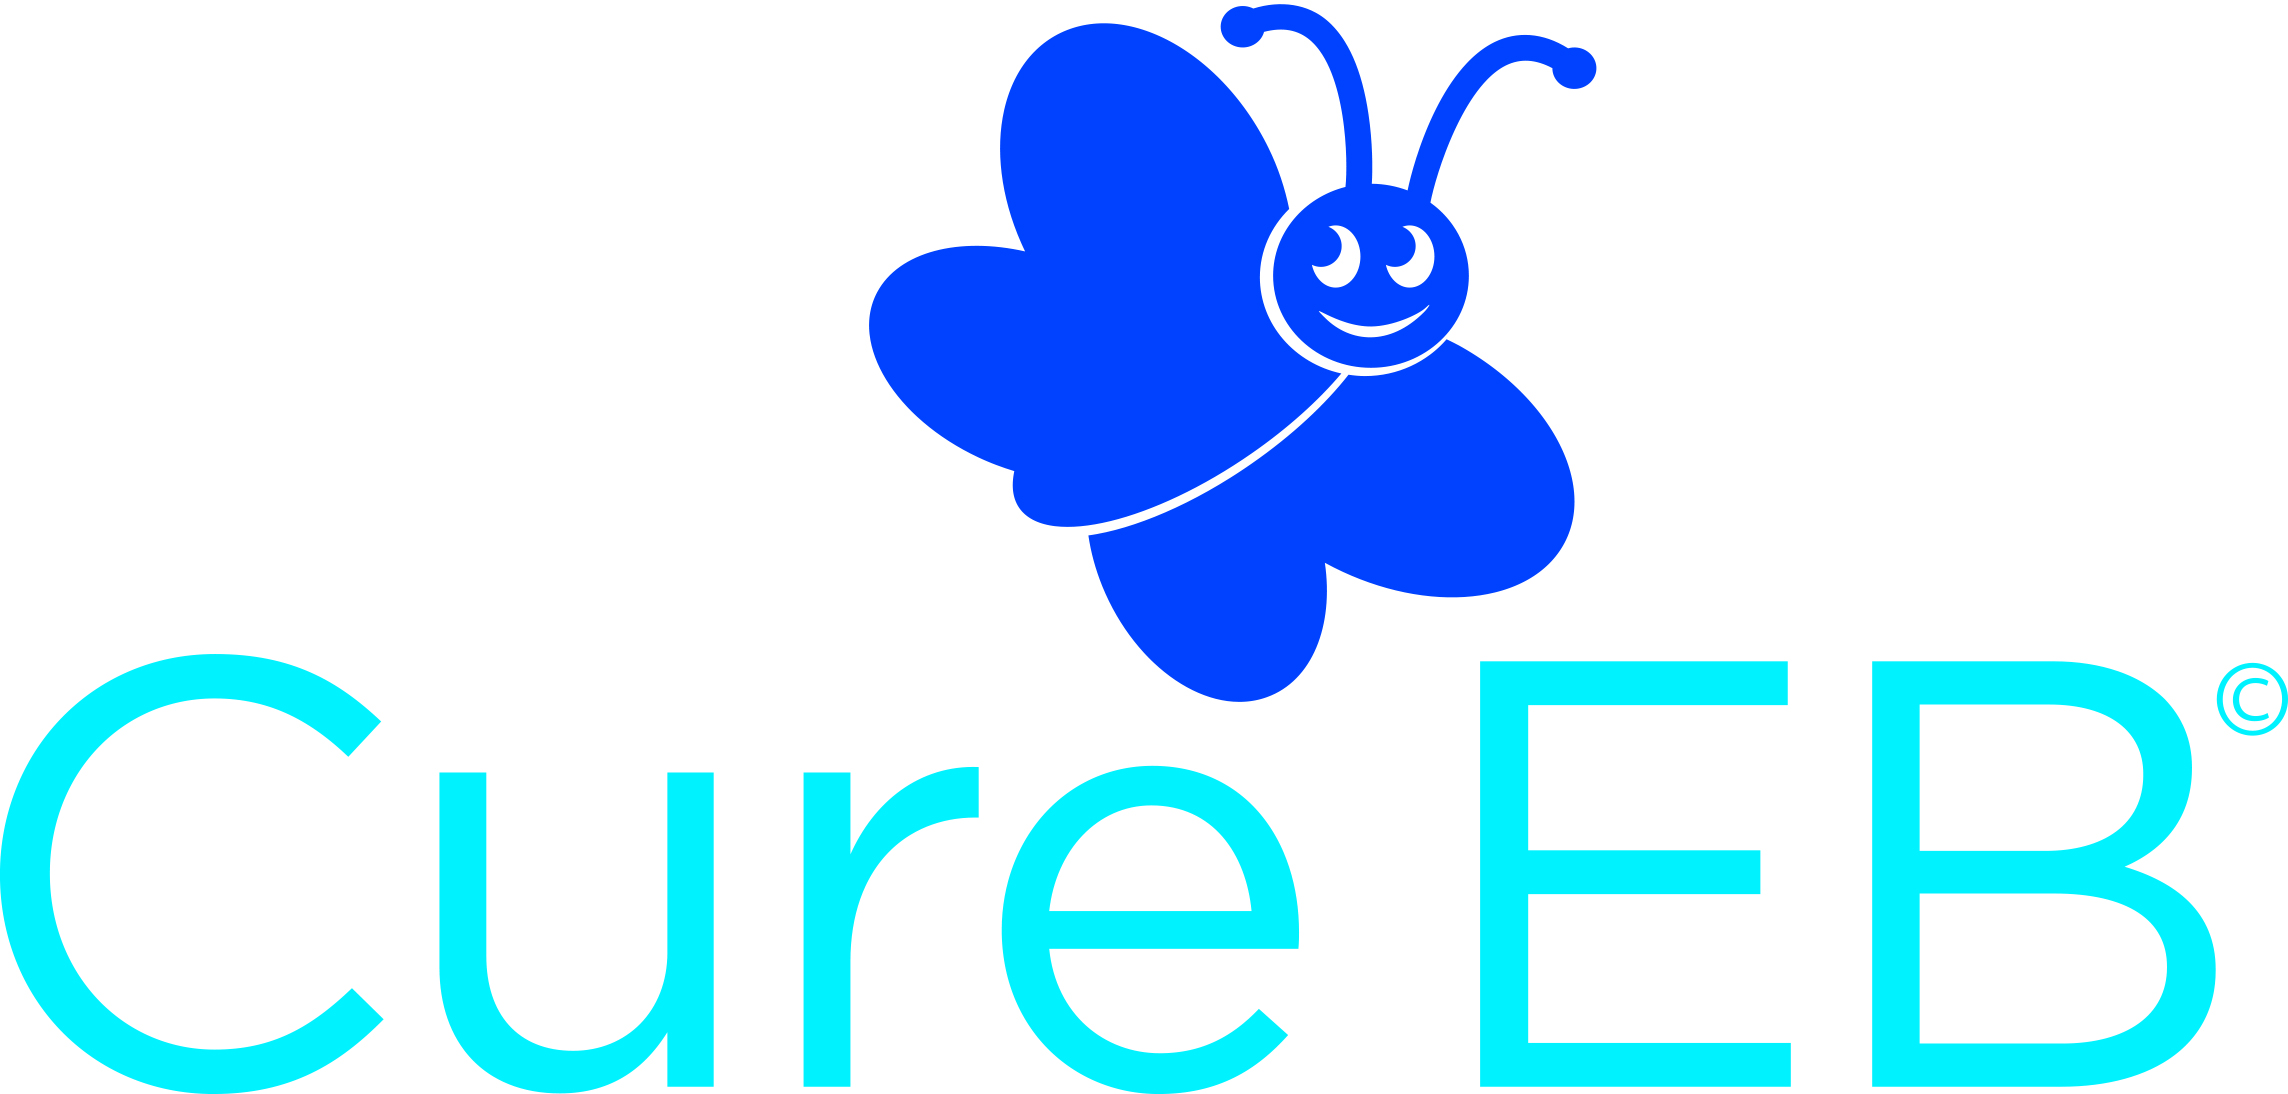 Cure EB, EB2020, EB Congress, EB World Congress, Blisters, Genetic, Skin cancer, Infection